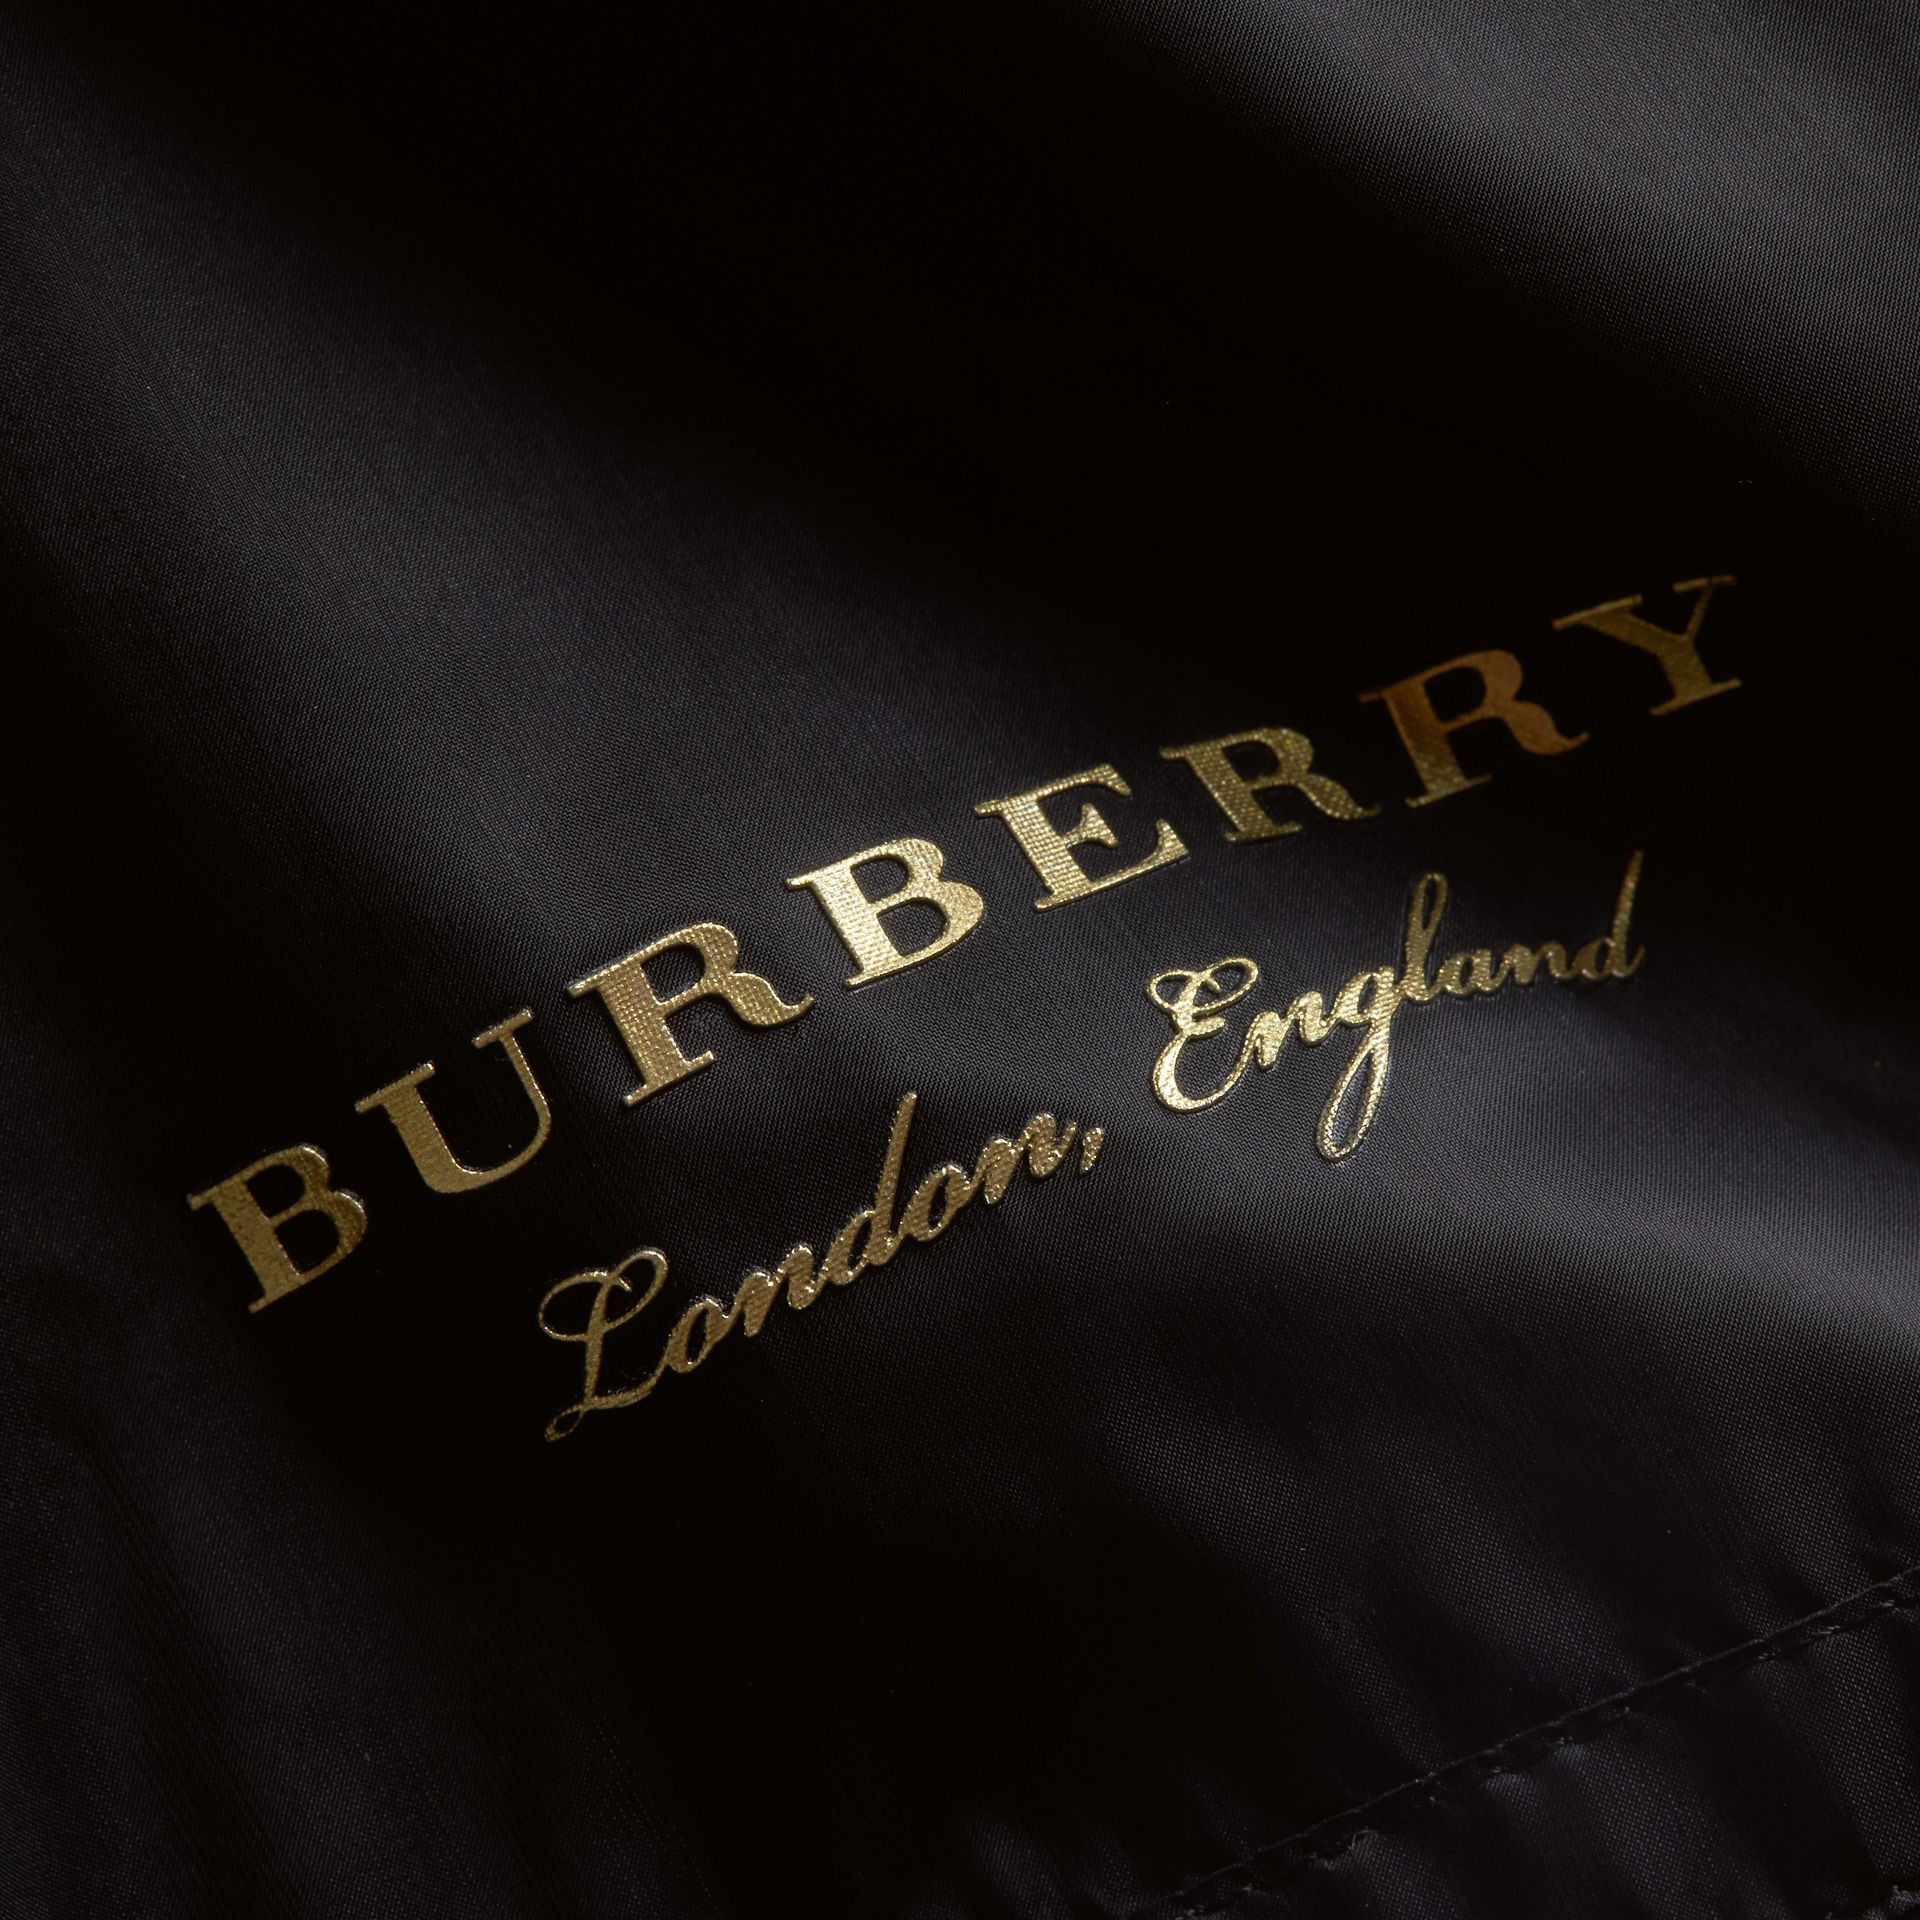 Lightweight Bomber Jacket in Black - Women | Burberry - gallery image 2